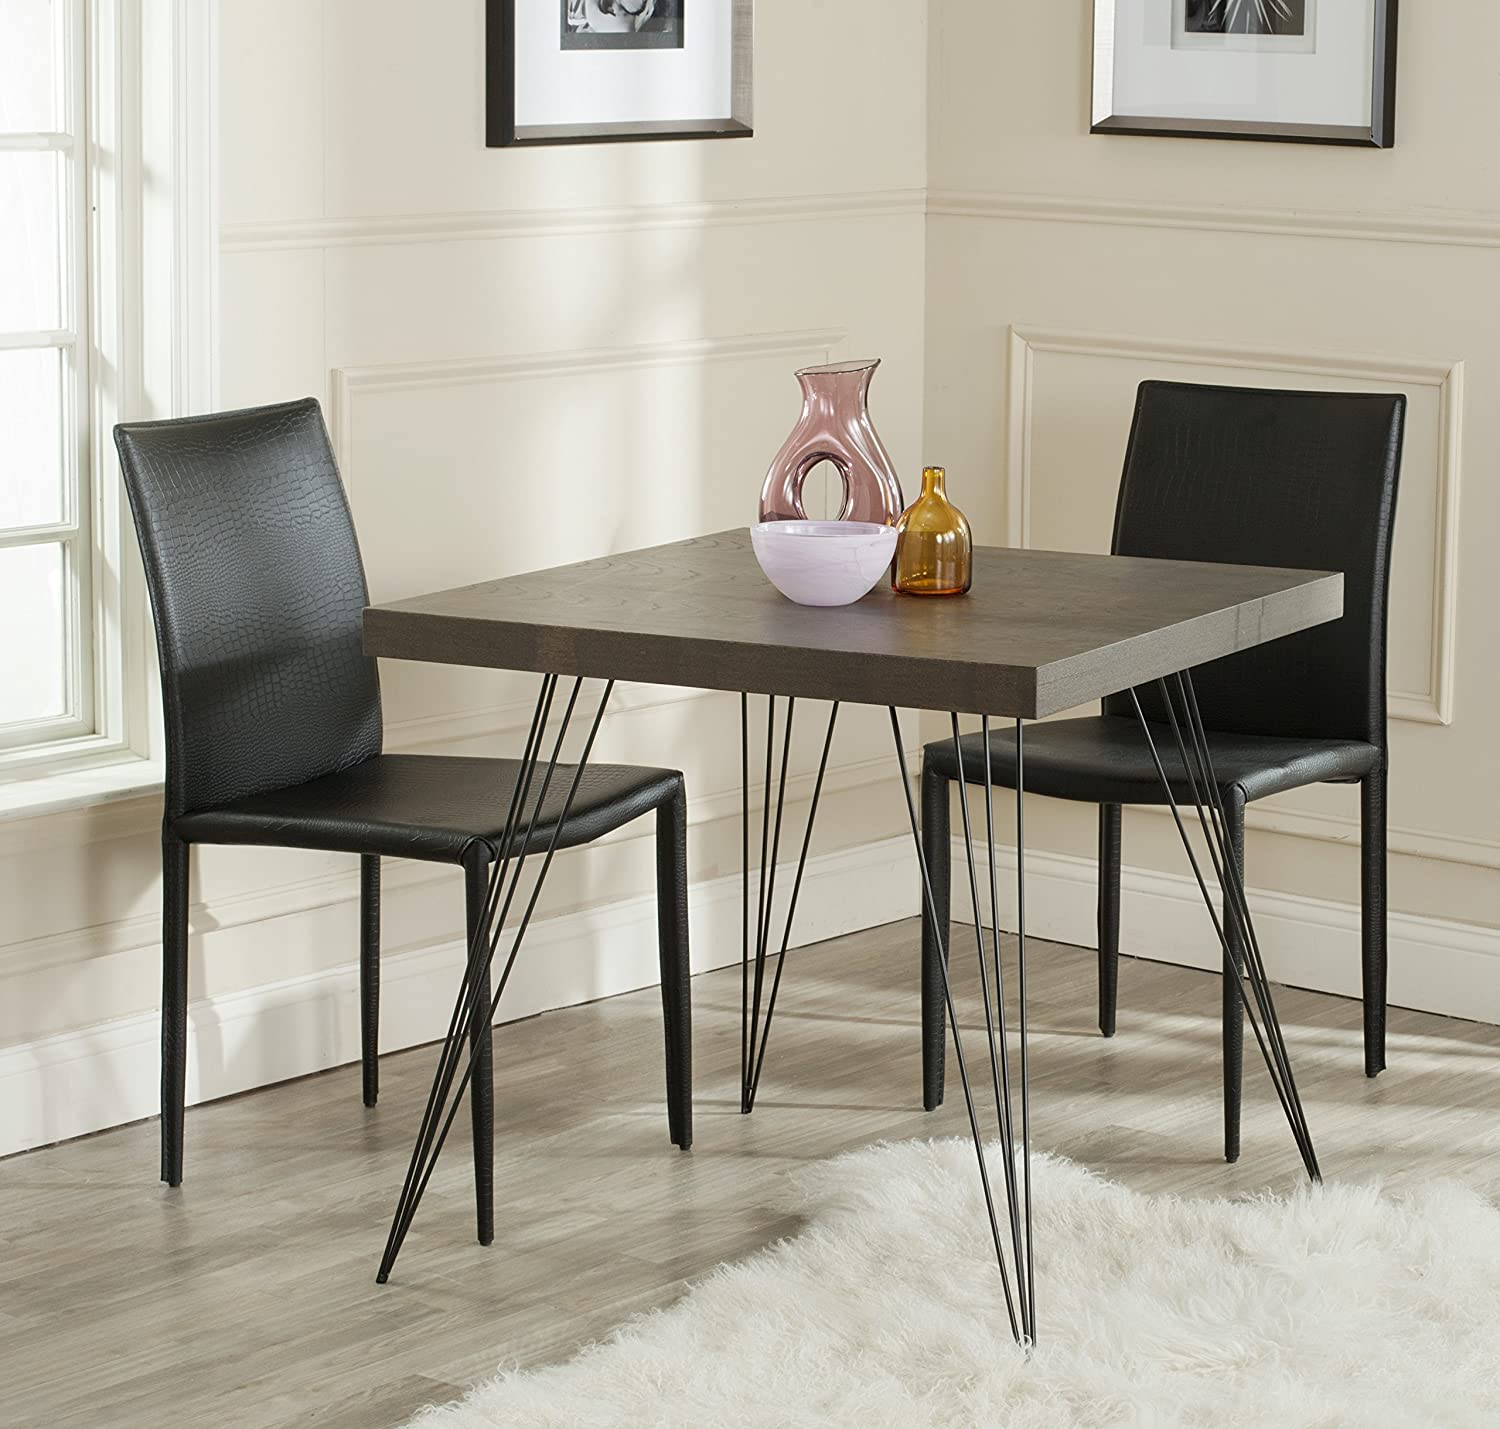 Safavieh Home Collection Wolcott Mid-Century Modern Dark Brown and Black Accent Table